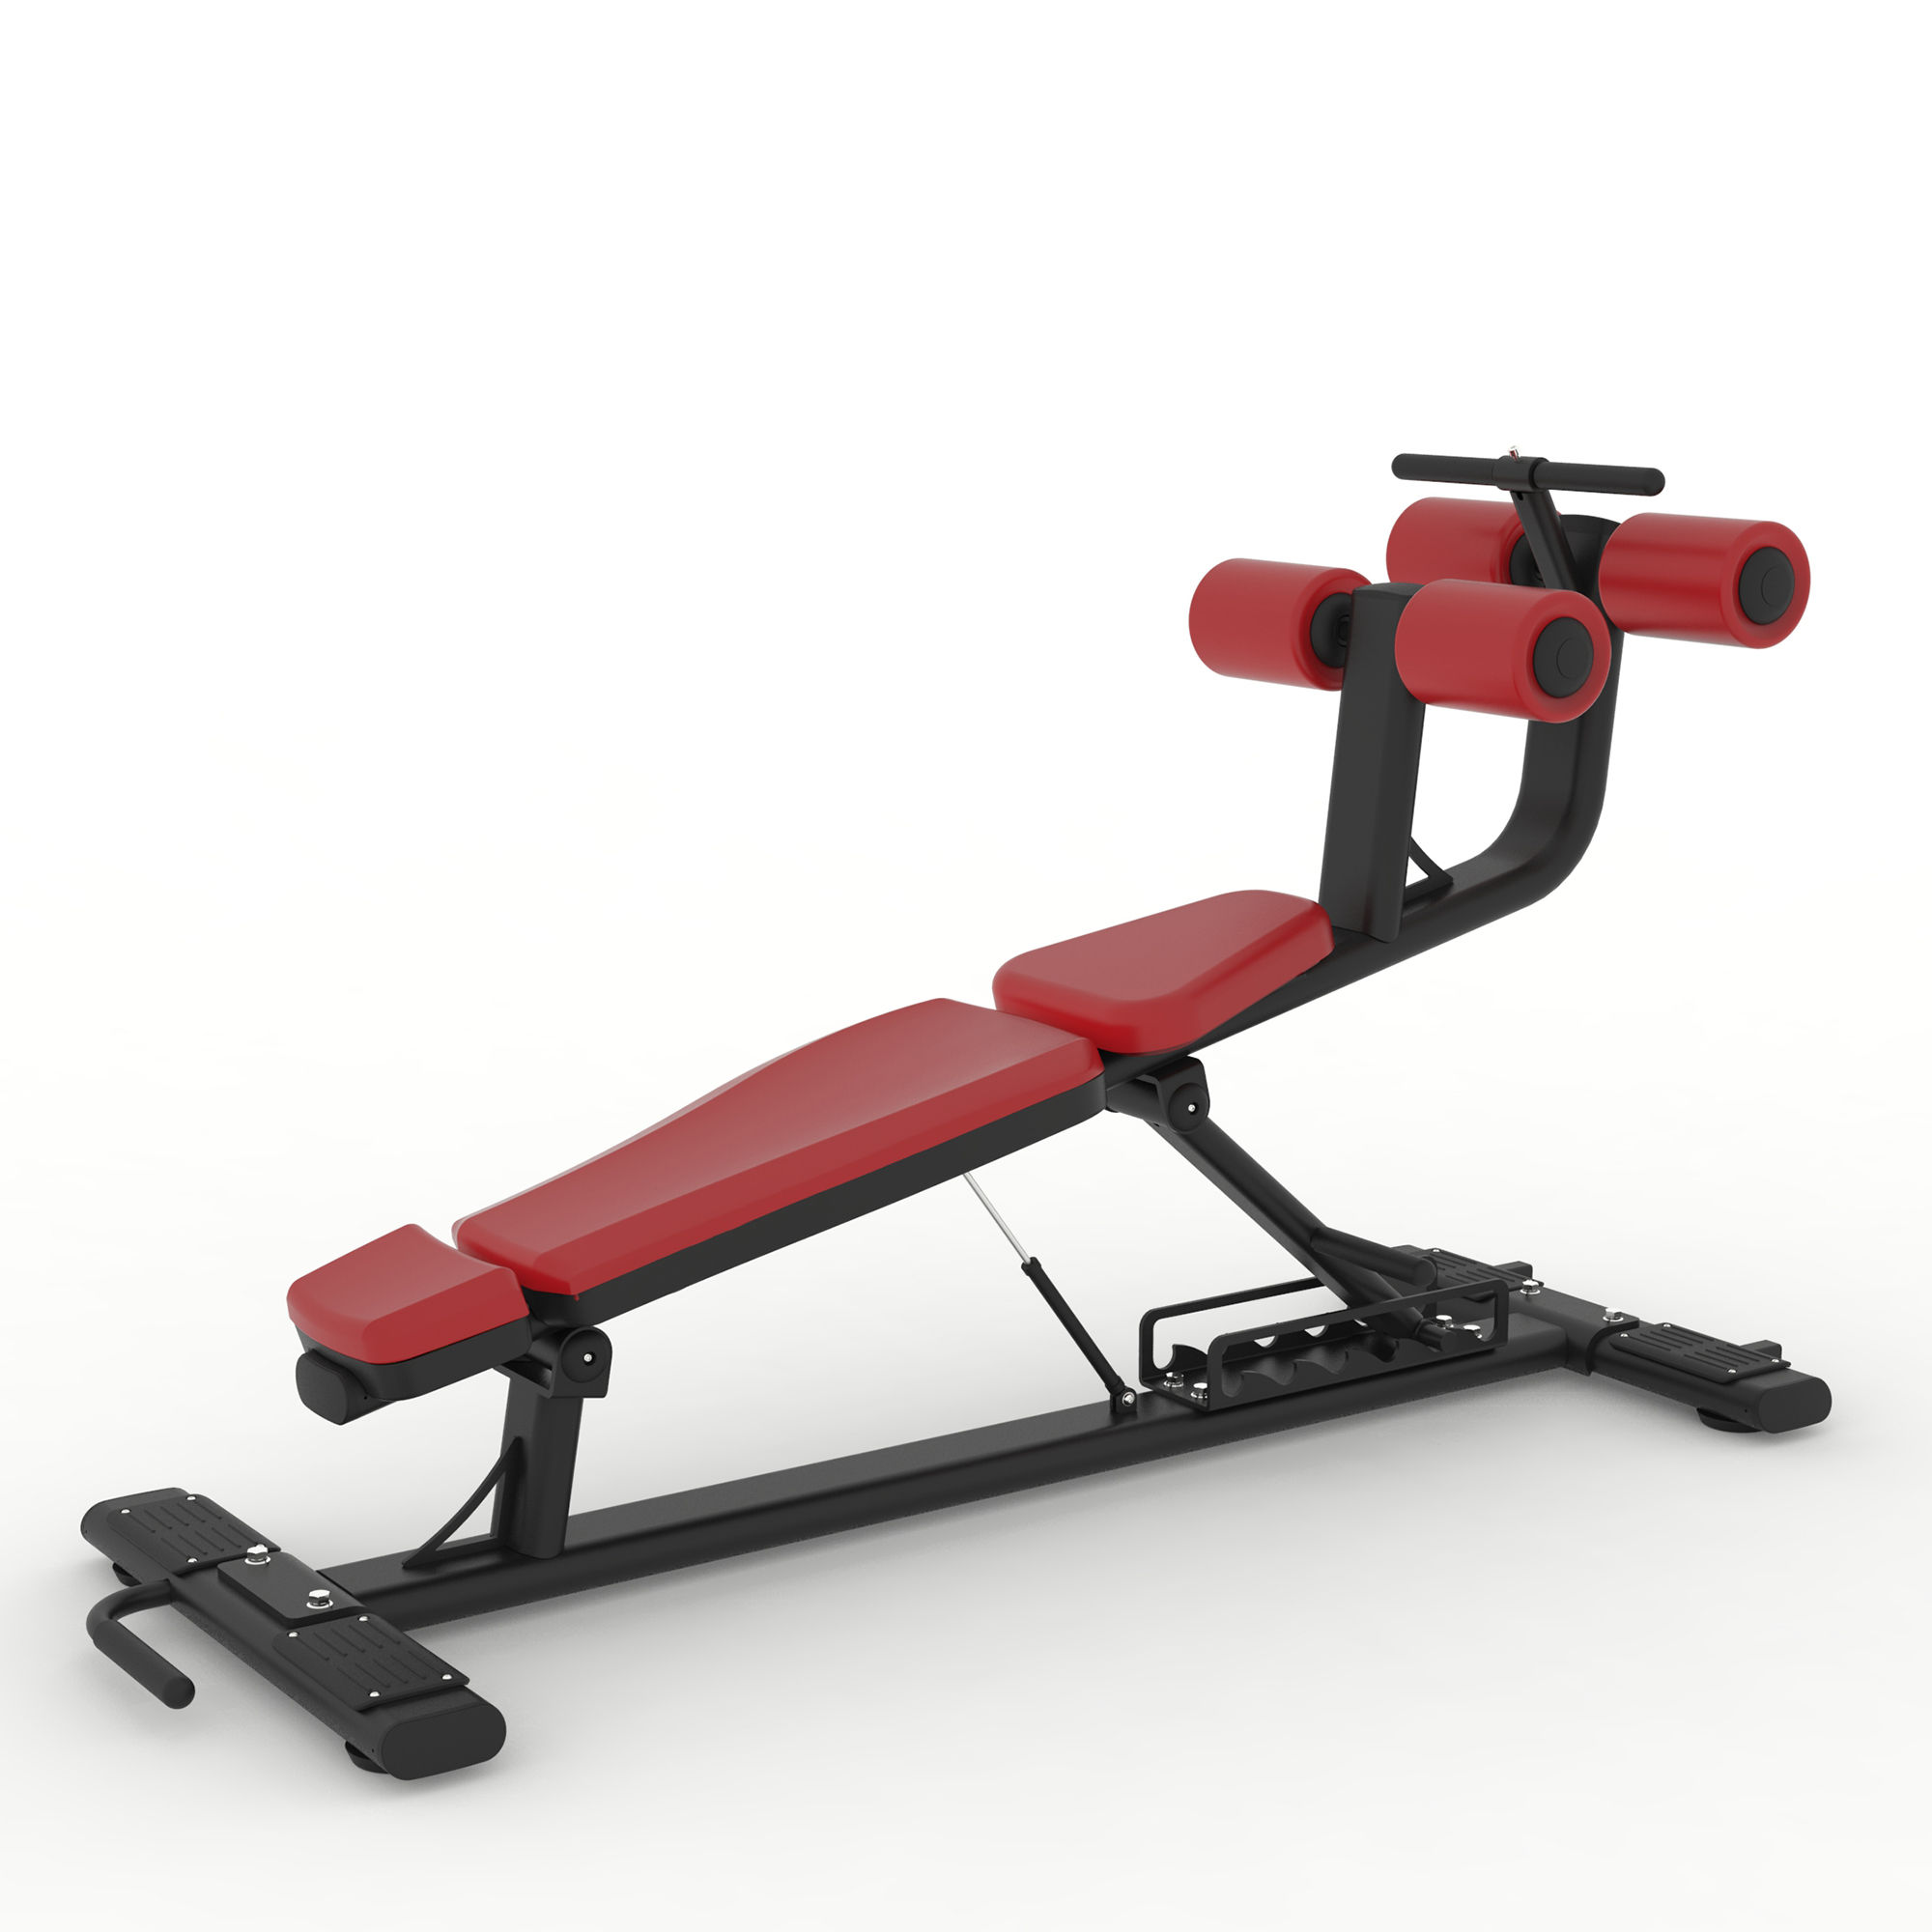 Adjustable Abdominal Decline Bench